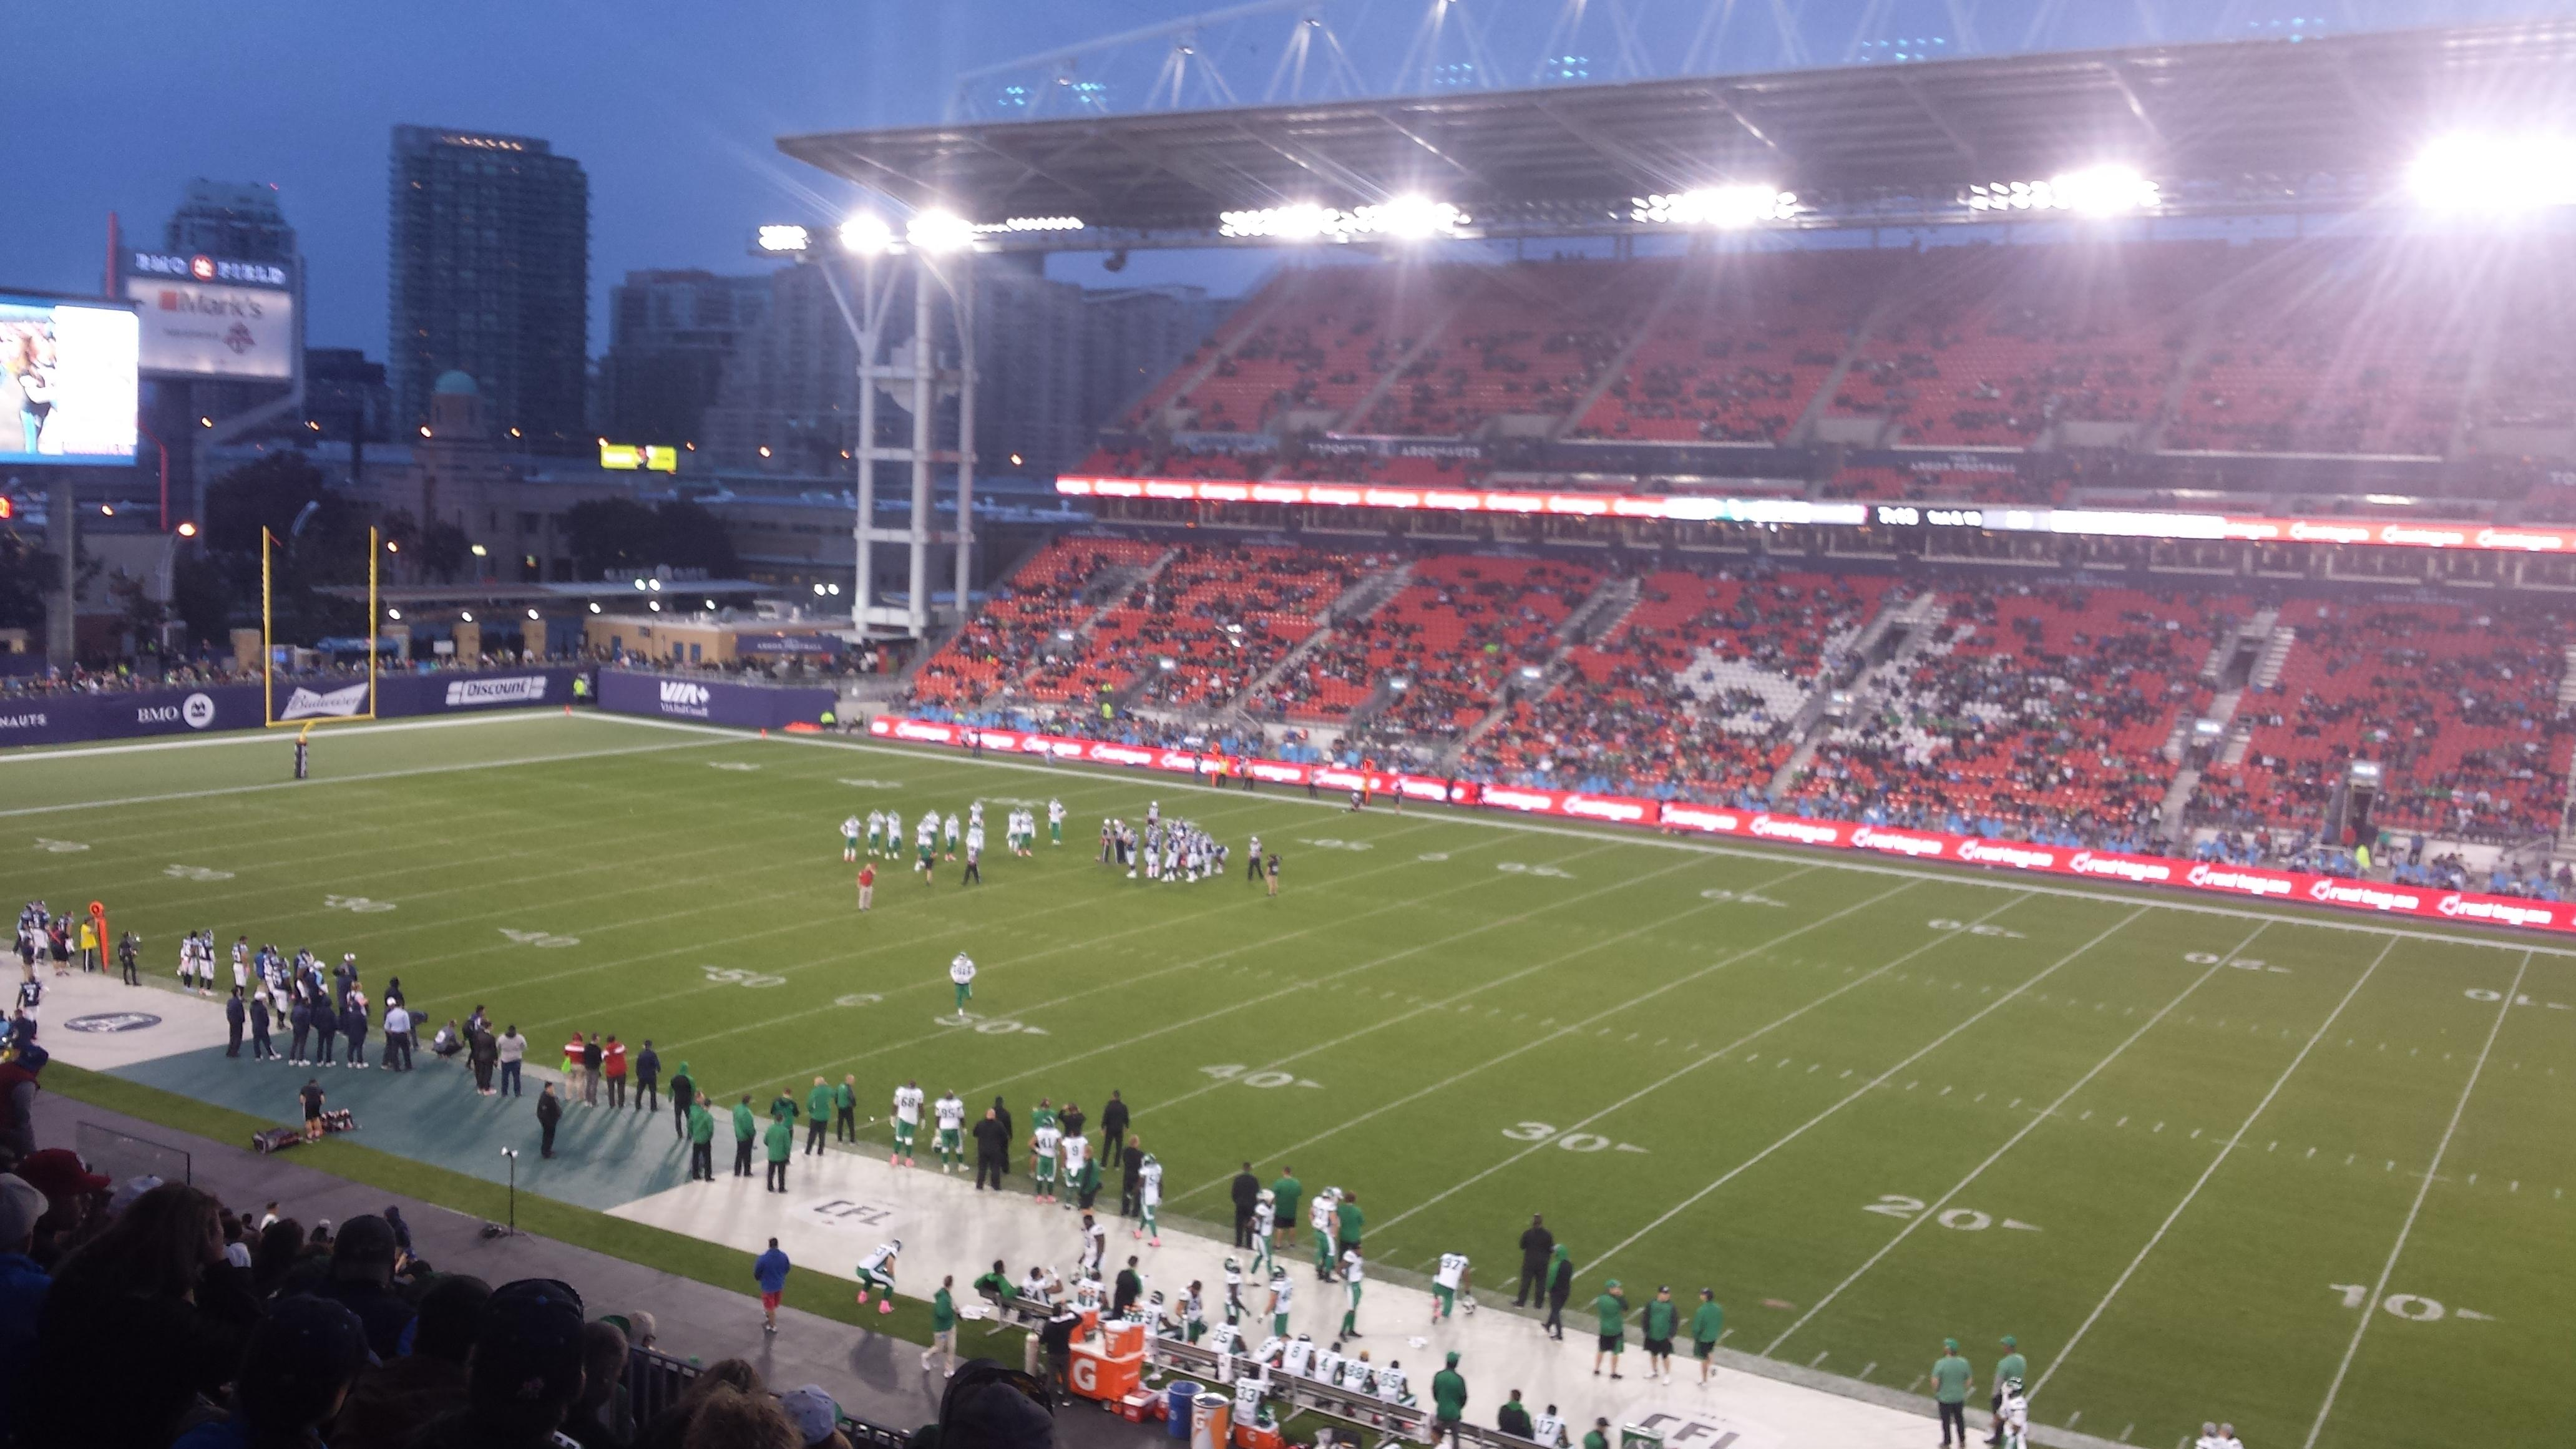 BMO Field Section 221 Row 11 Seat 1